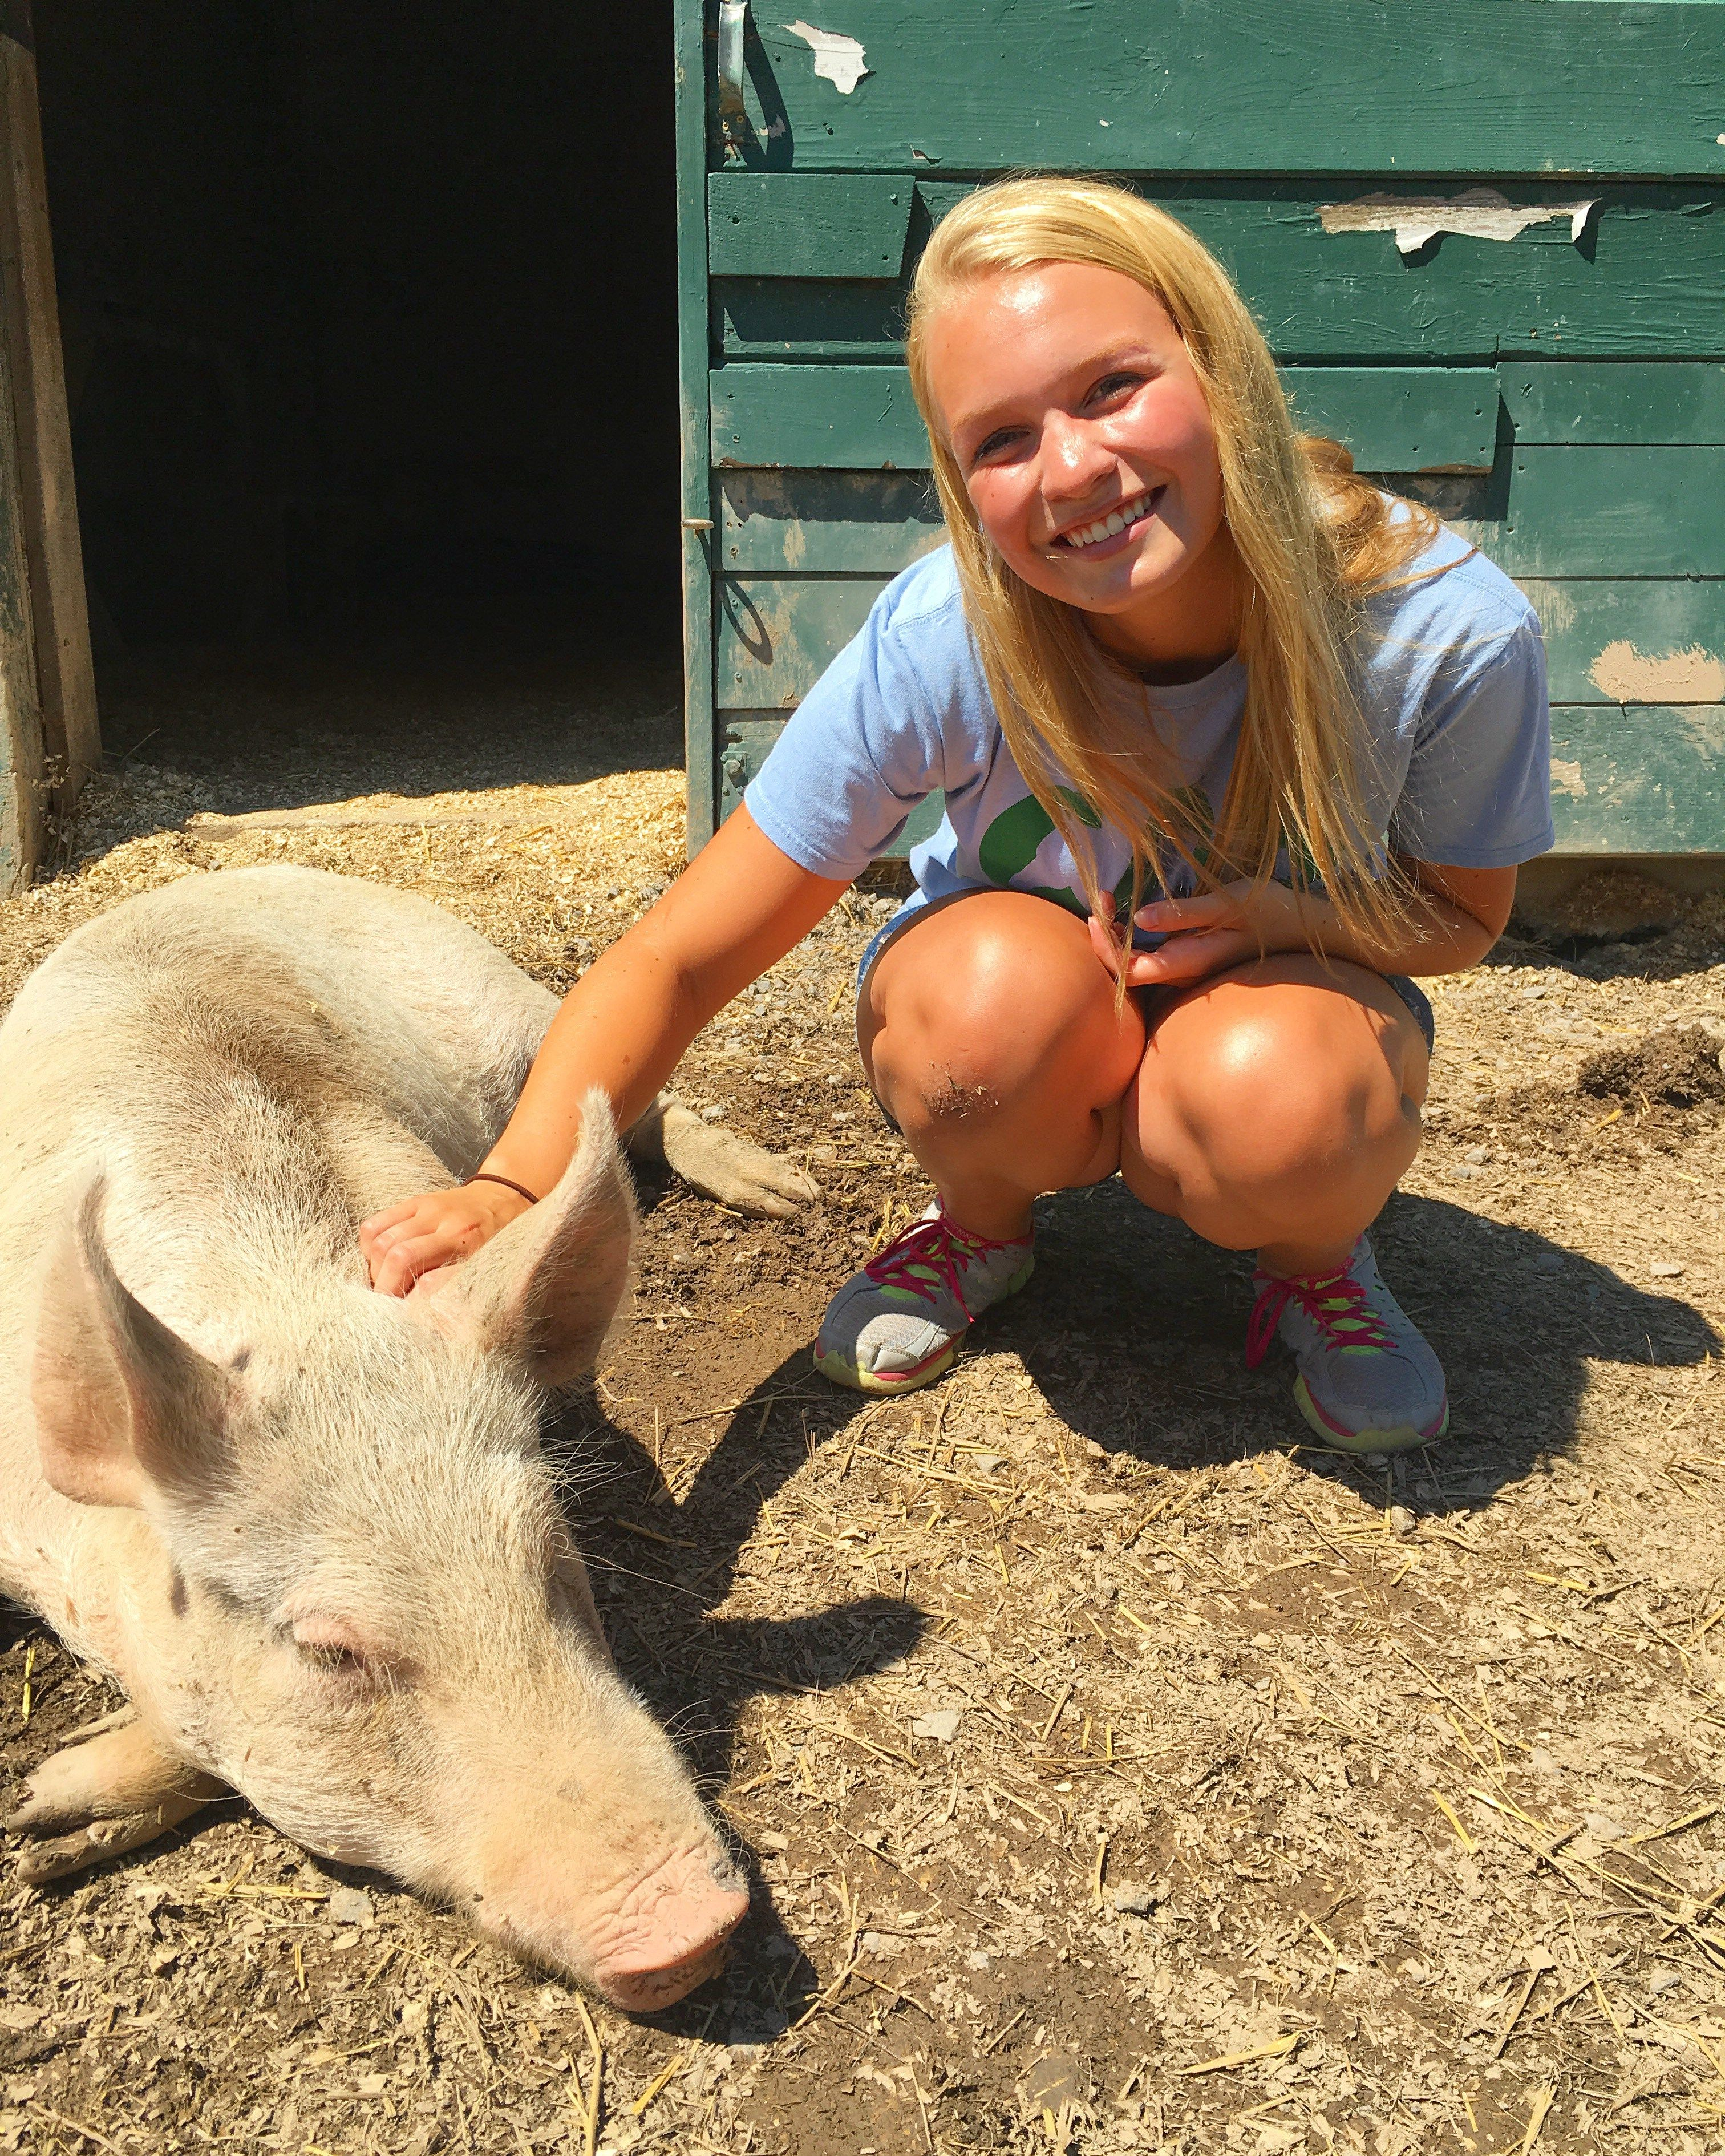 My name is Rachel Wojciak, and I am a eighteen-year-old vegan activist and advocate for peaceful protesting and animal rights. I am currently a freshman at the University of New Hampshire, where I …